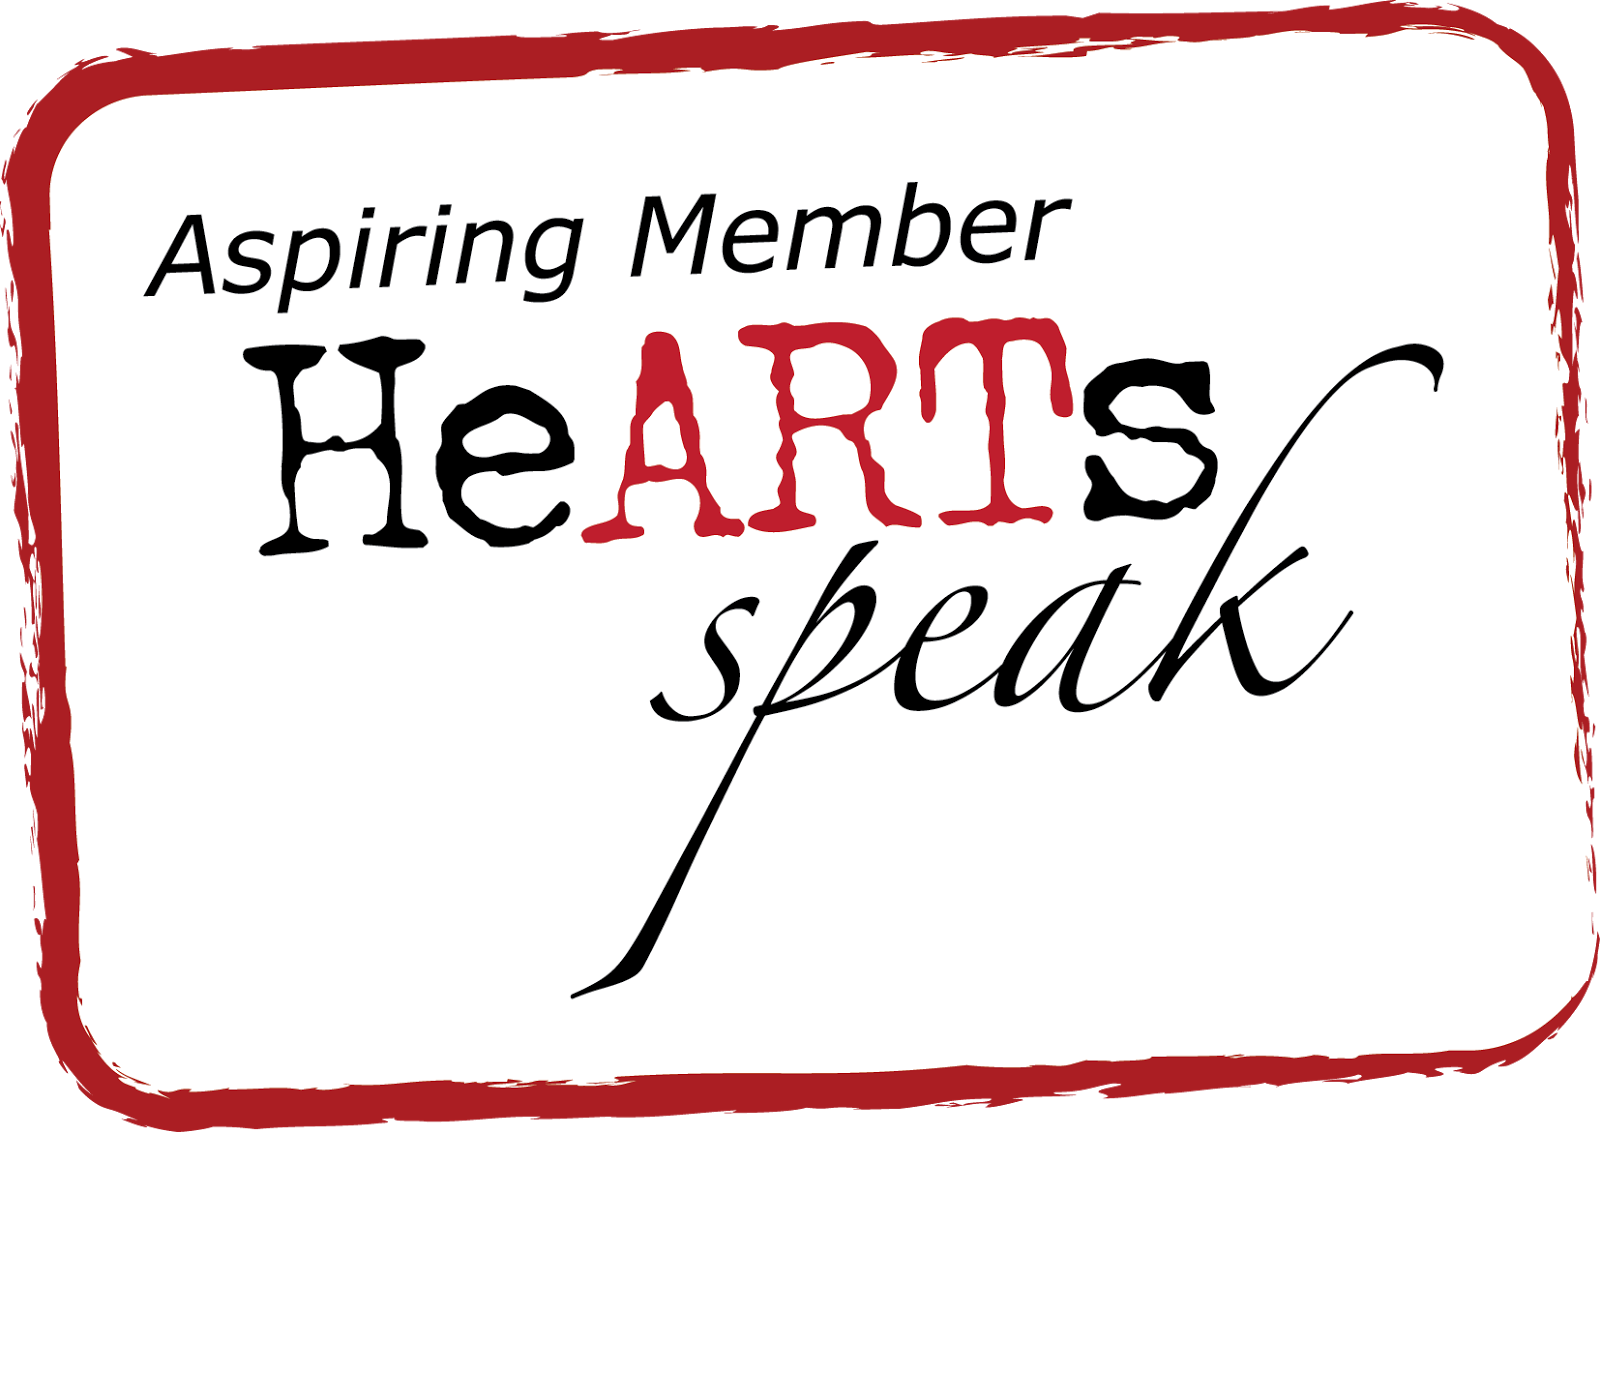 Aspiring Member, HeARTs Speak